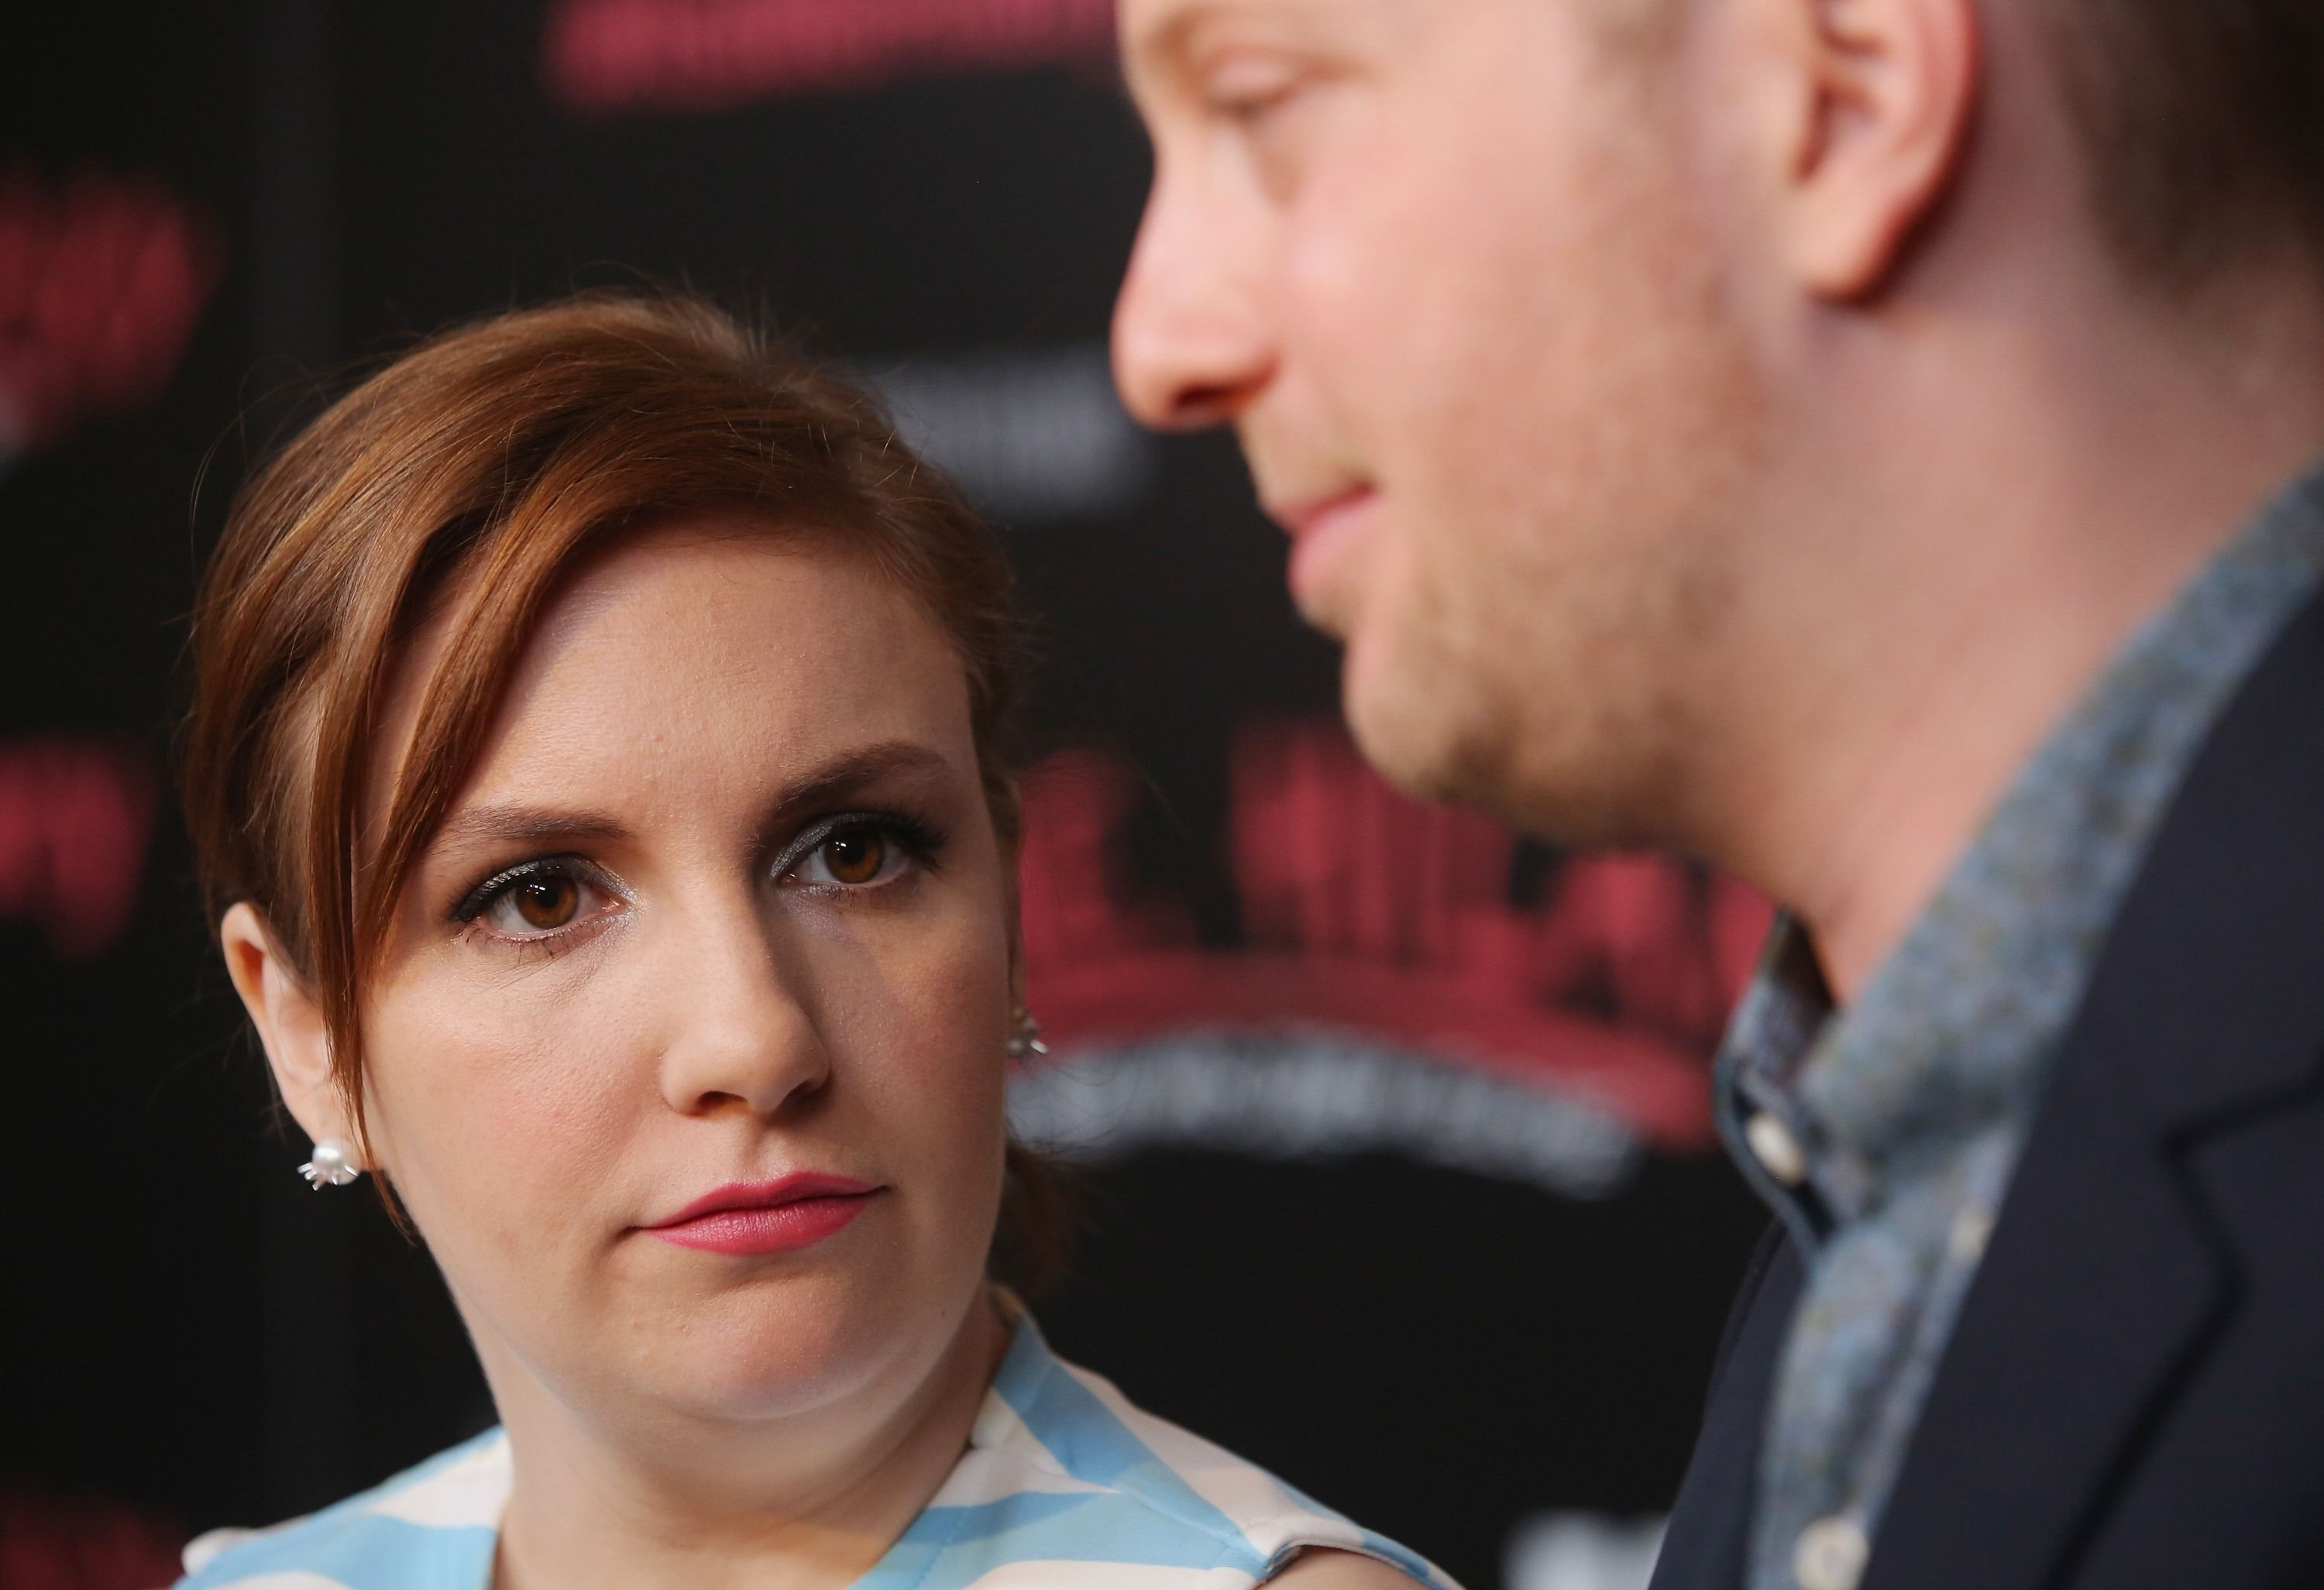 Lena Dunham Apologizes, Admits She Lied To Discredit Alleged Rape Victim